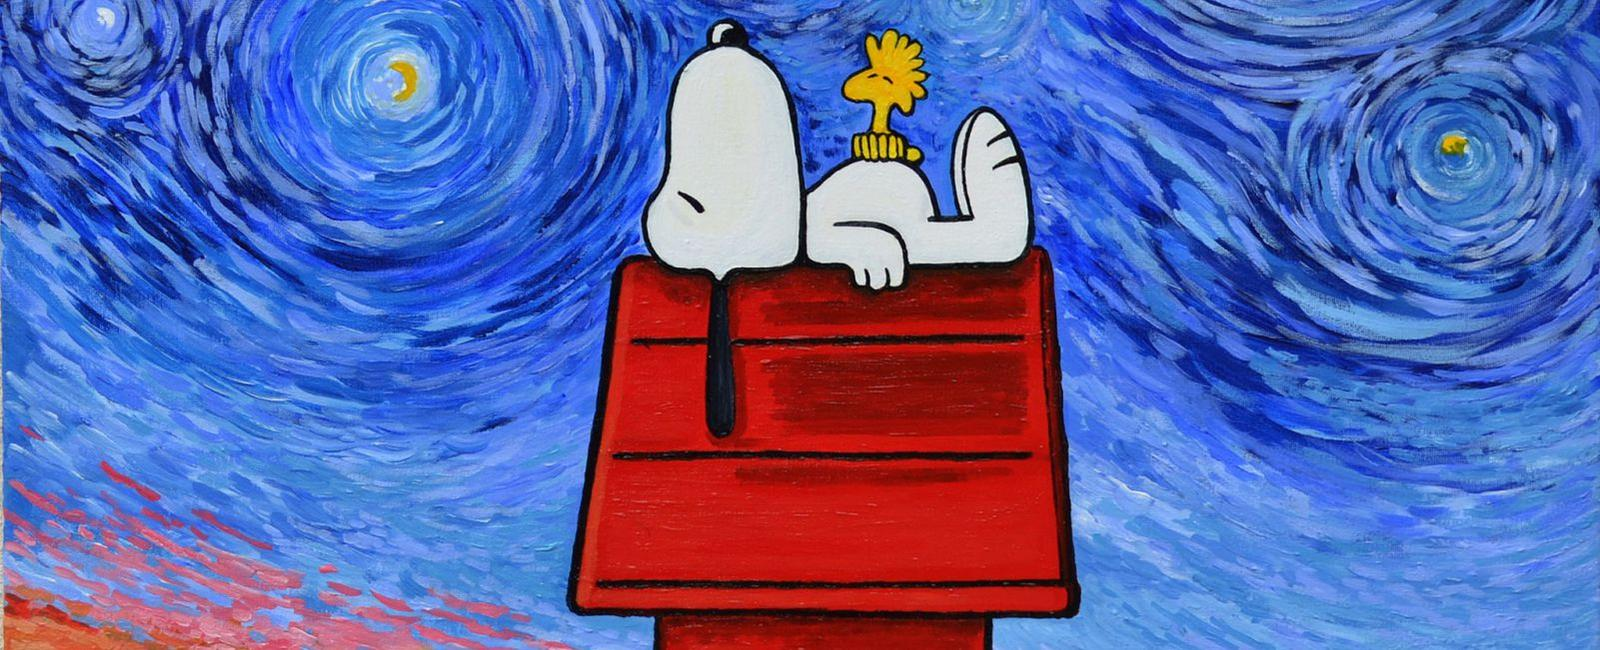 What Kind of Dog Is Snoopy?